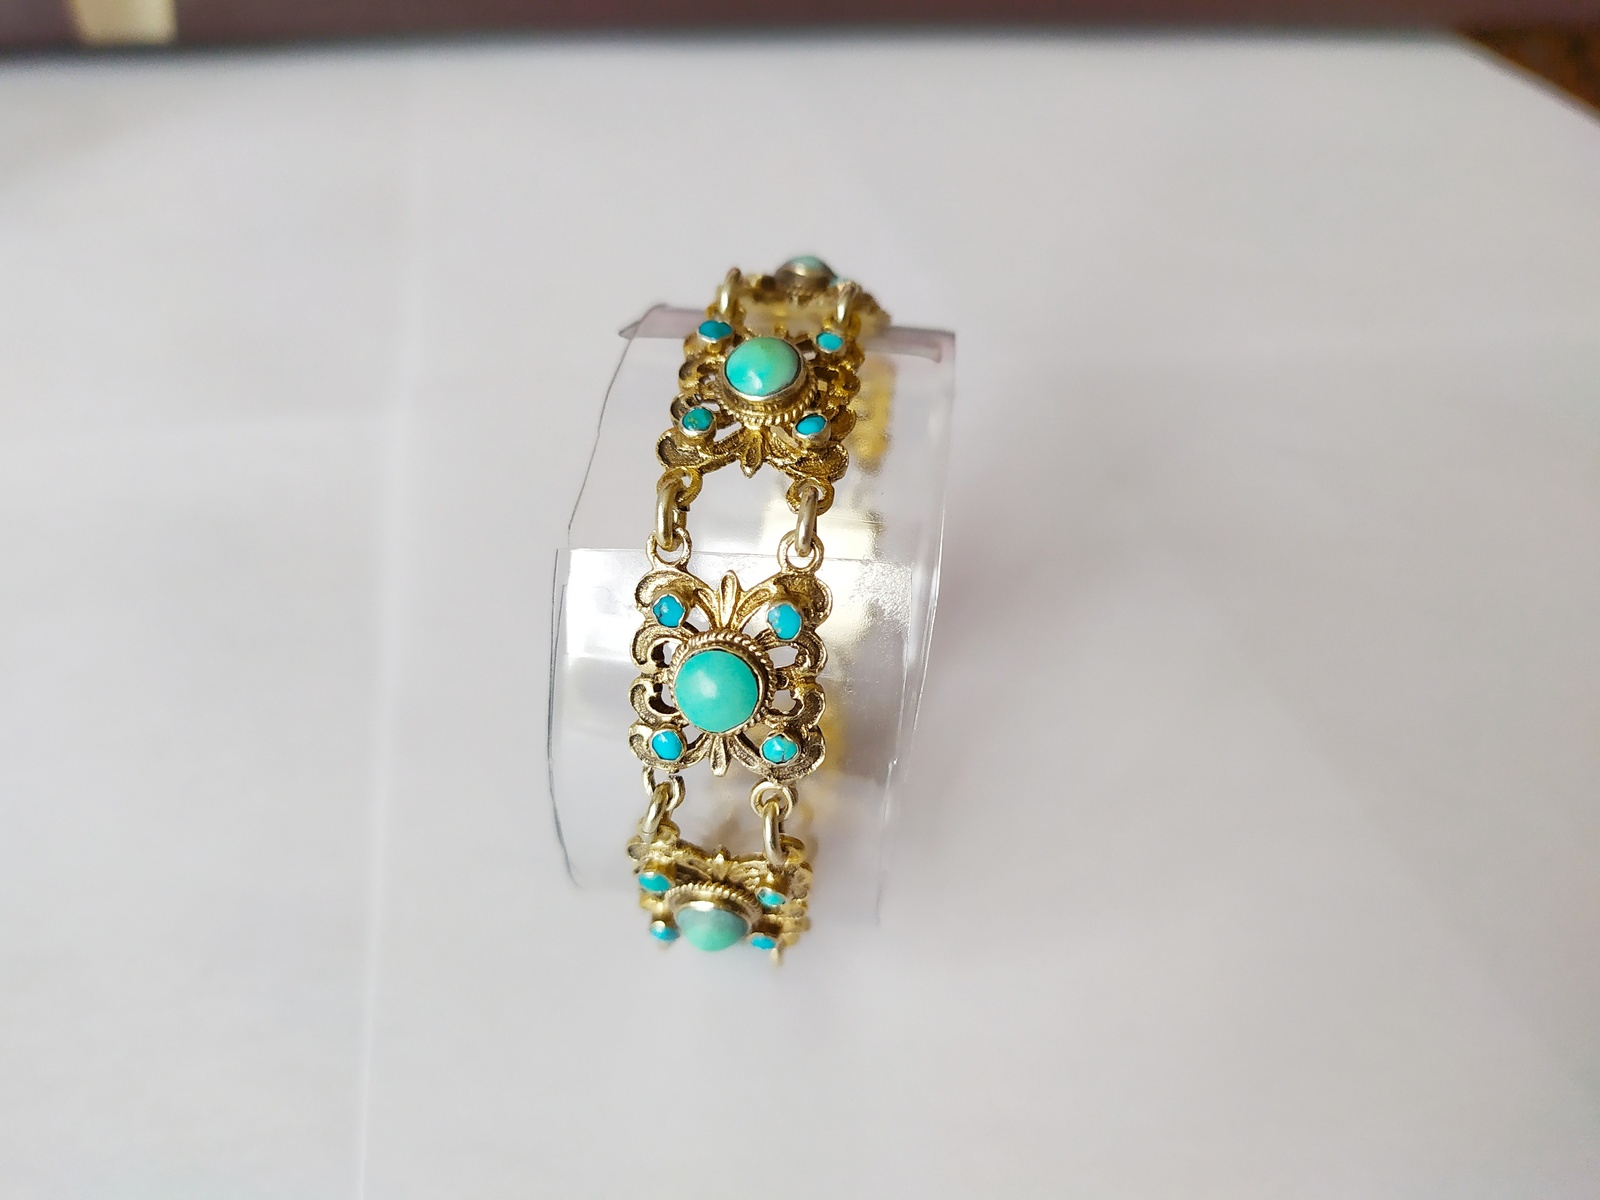 Antique Austro-Hungarian Green Turquoise and Gold Bracelet